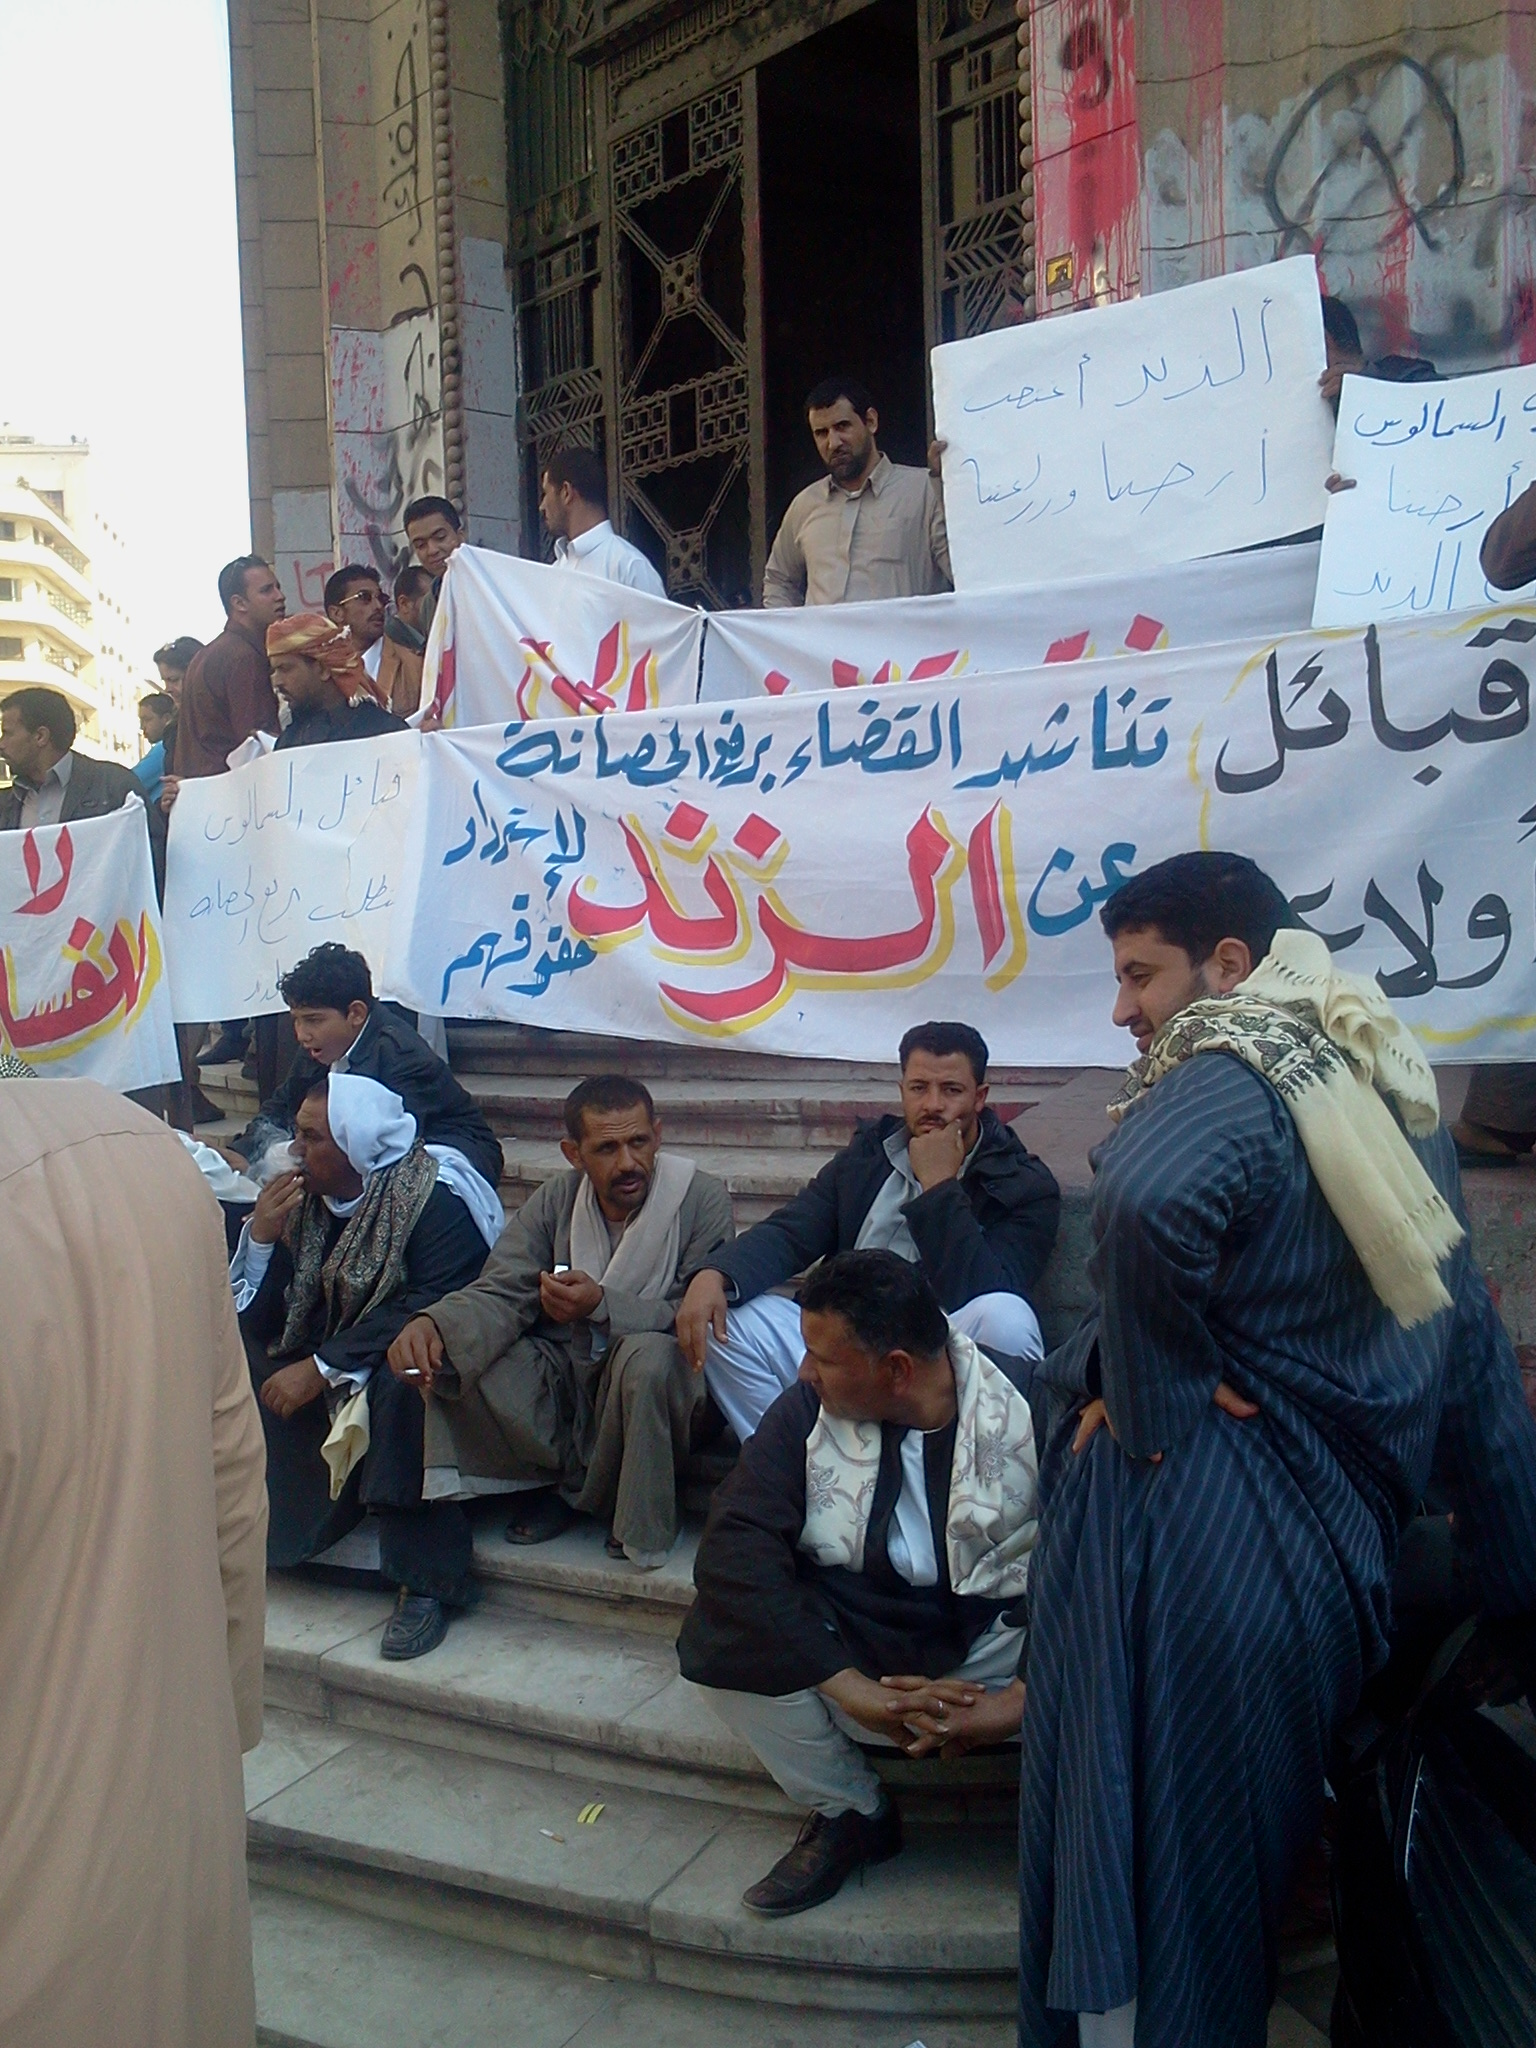 The tribe members accuse El-Zend of illegally seizing 400 feddans of their lands. As he has judicial immunity, they are currently unable to sue him. (Photo By Fady Salah)